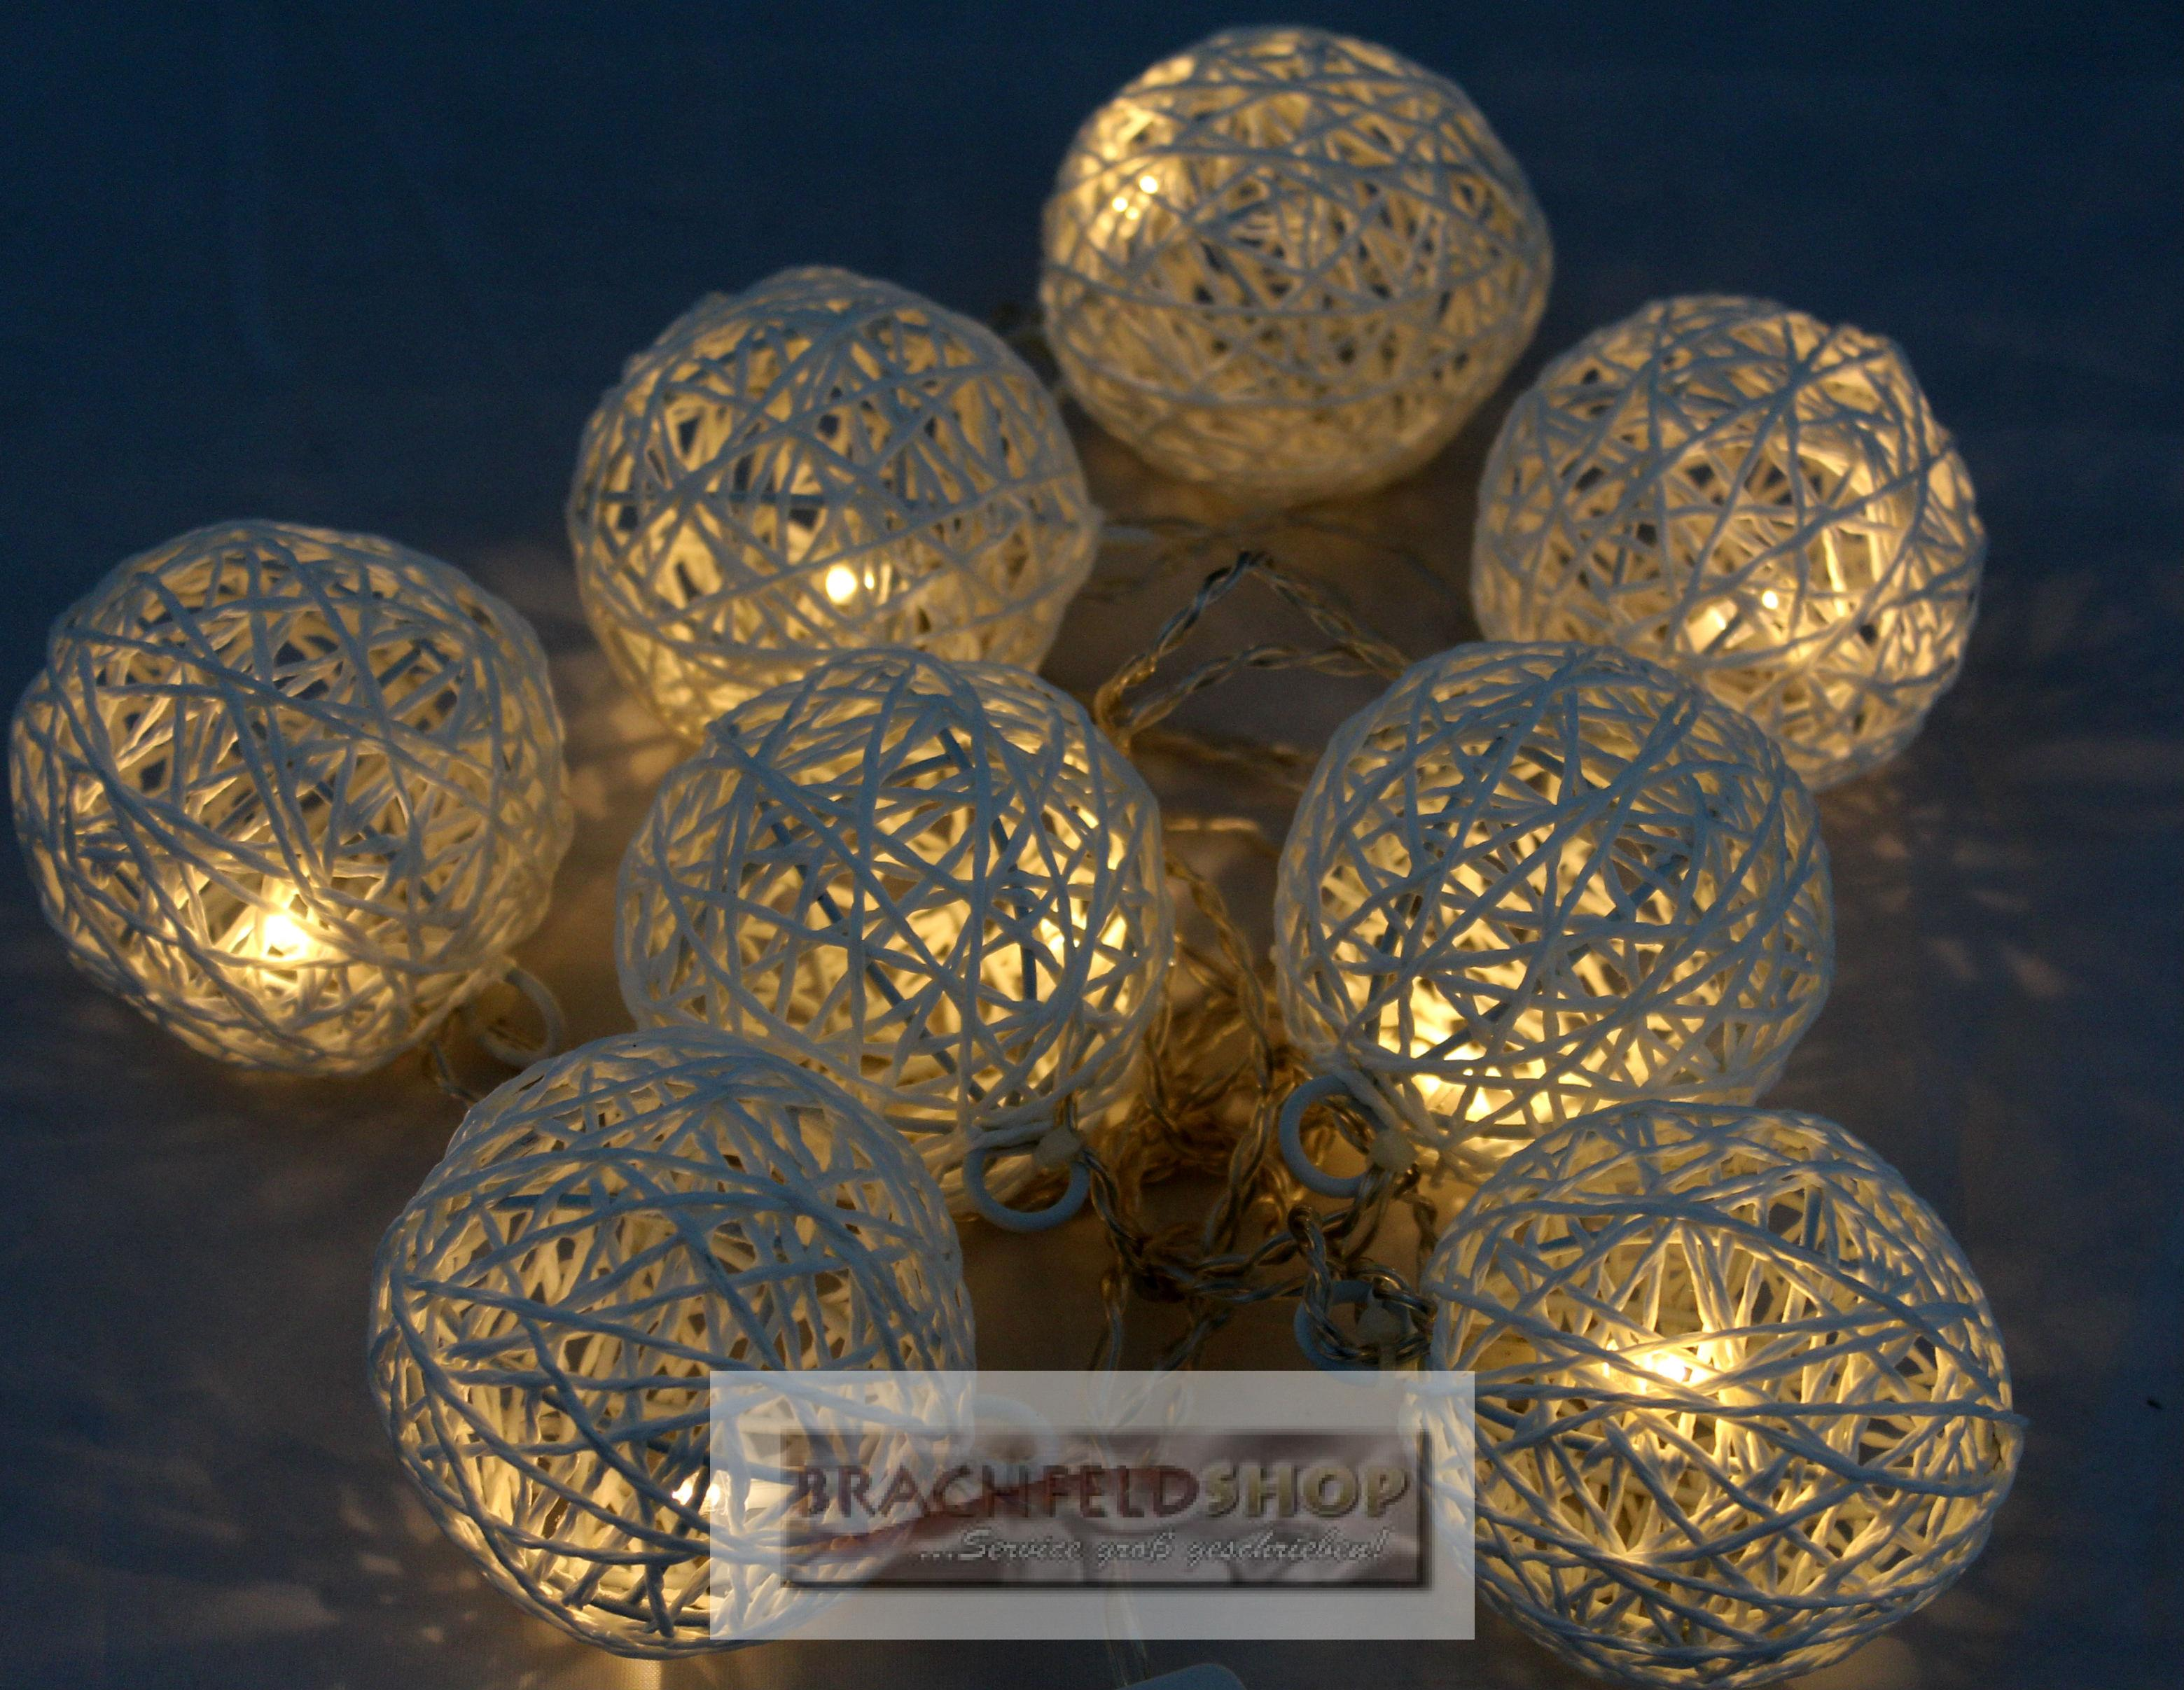 led lichterkette kugel ball 8 rattankugeln dekoration licht warmwei ebay. Black Bedroom Furniture Sets. Home Design Ideas